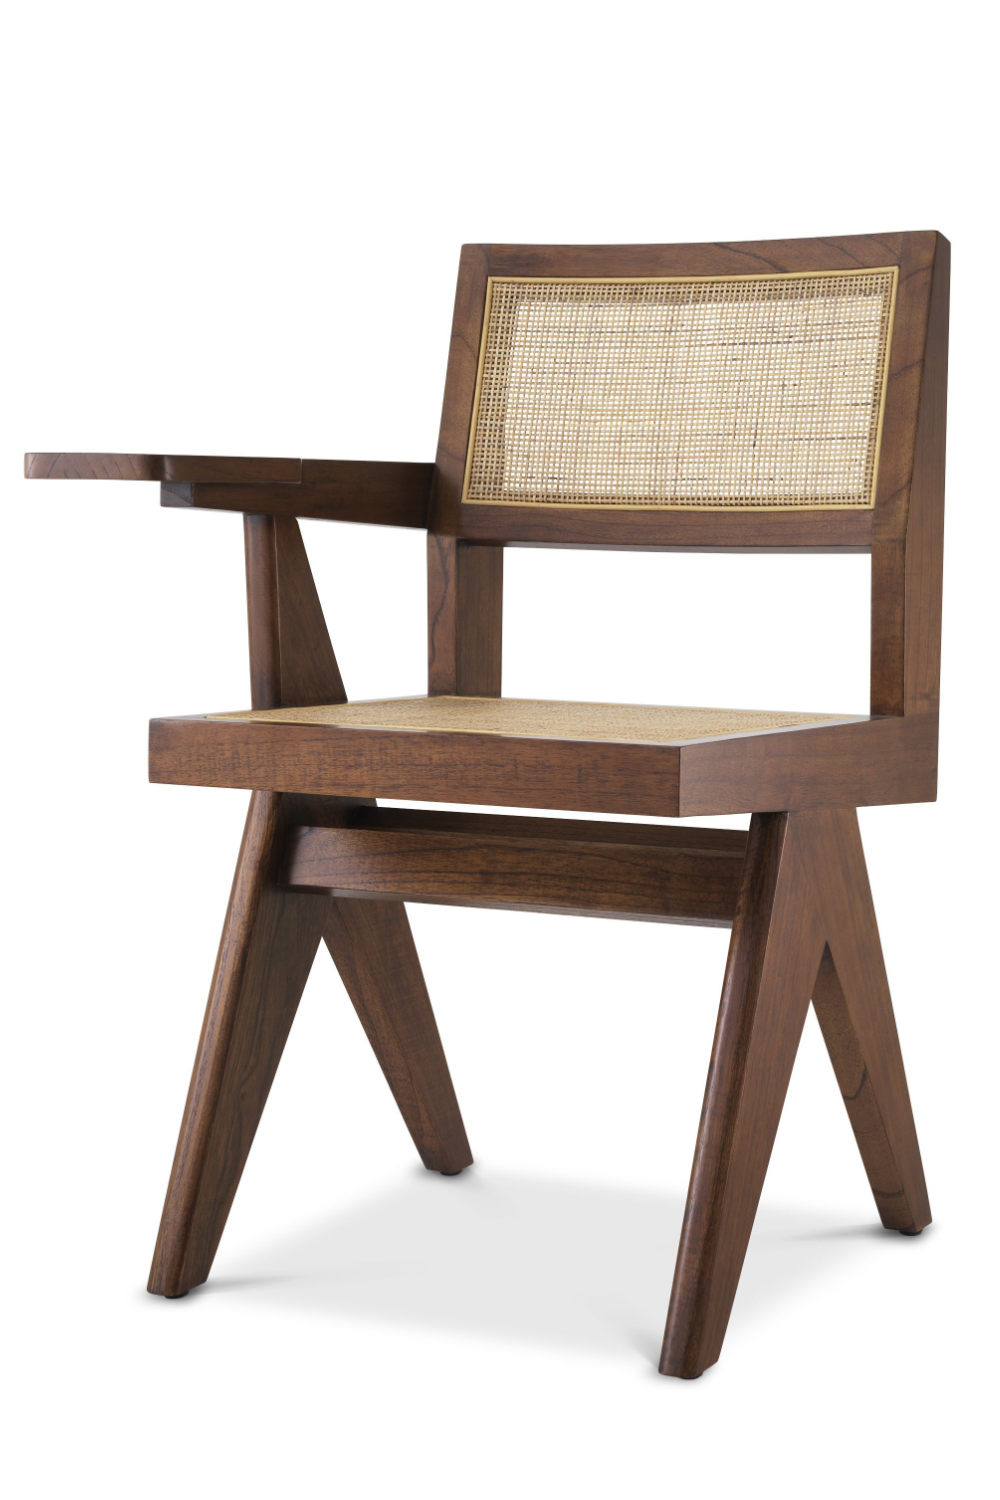 Brown Rattan Chair with Desk | Eichholtz Niclas | Woodfurniture.com